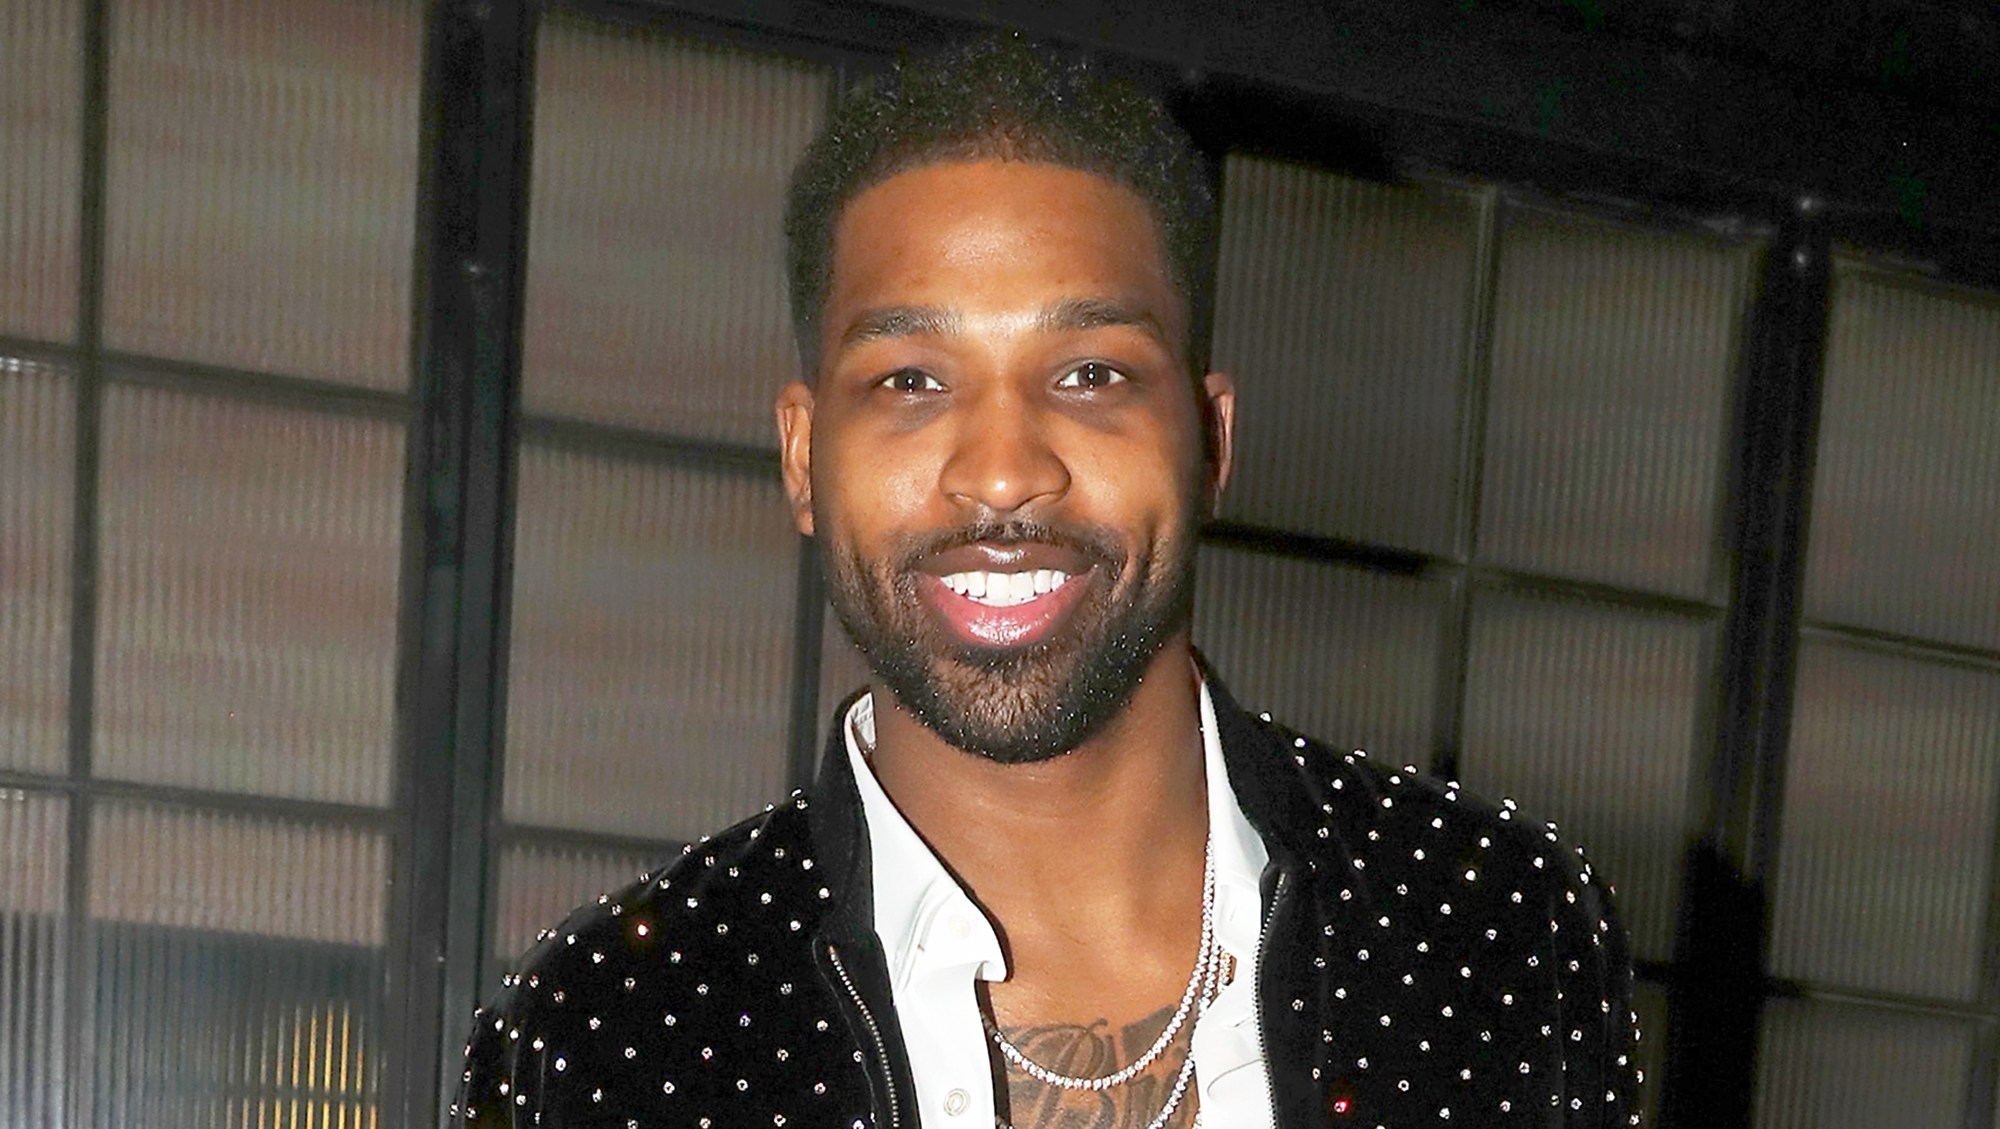 Tristan Thompson attends Remy Martin 2018 Viewing Party at Luchini Pizzeria and Bar in Los Angeles, California.